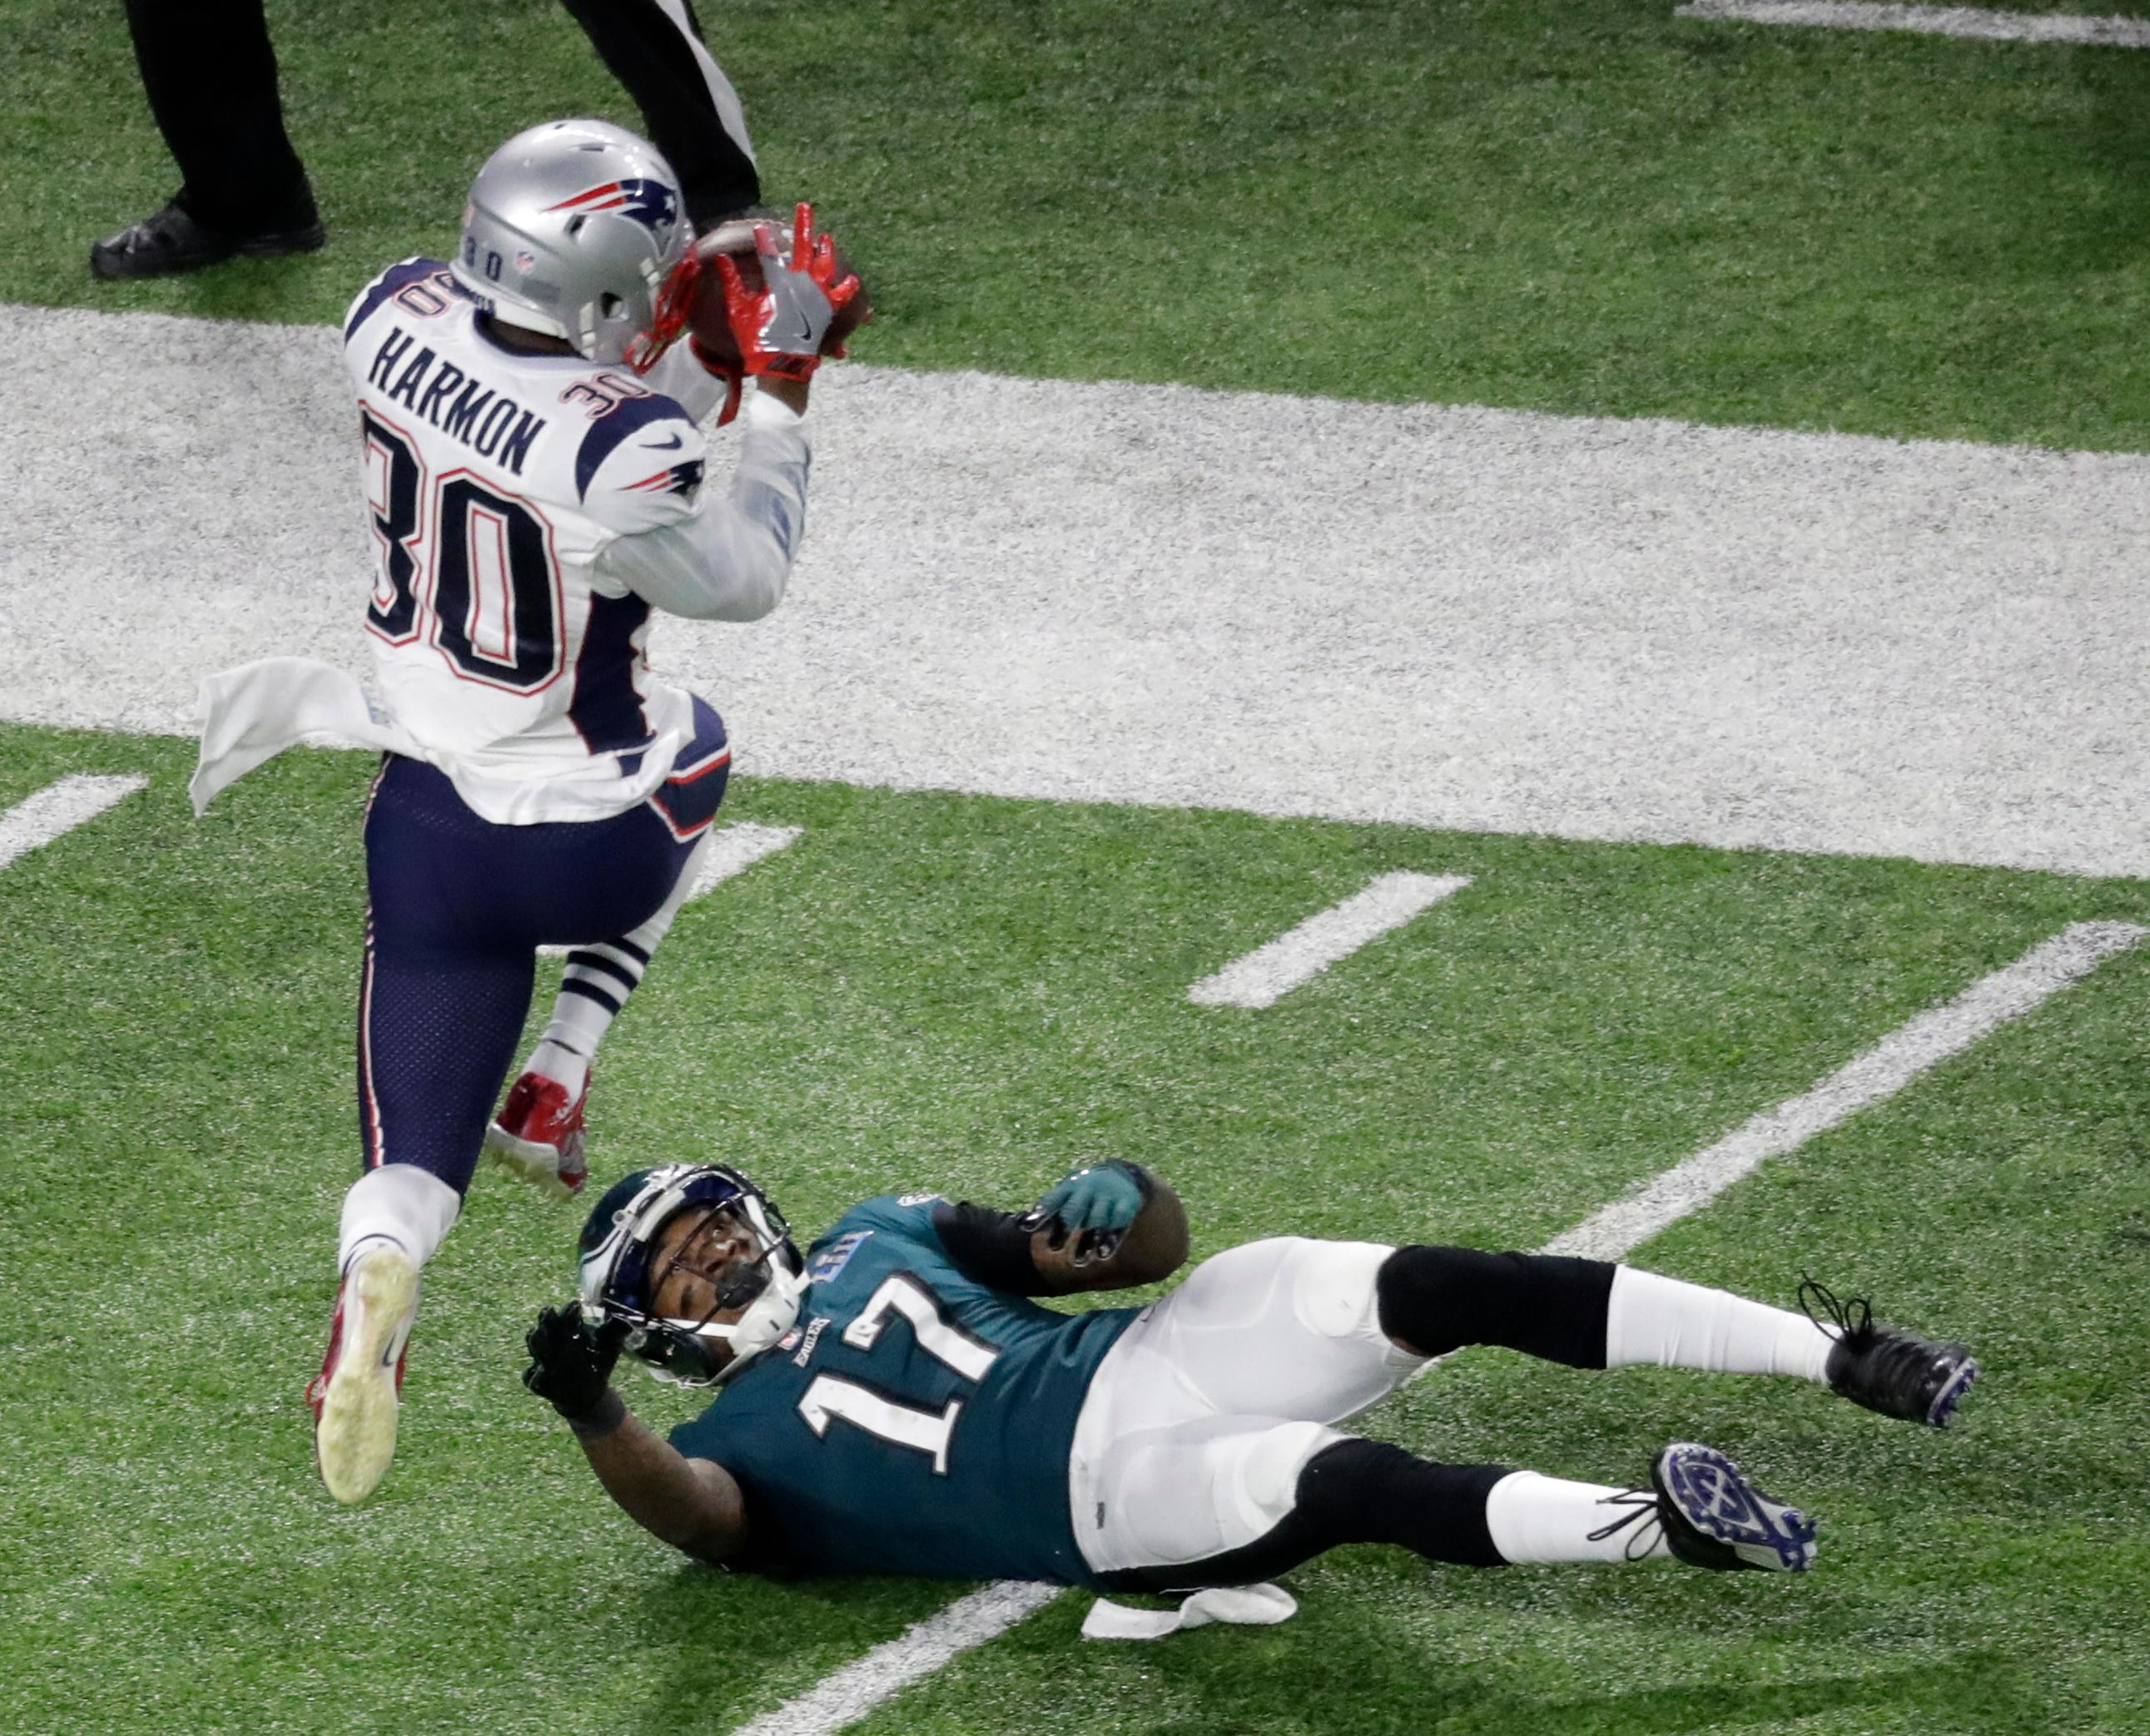 New England Patriots strong safety Duron Harmon intercepts a pass intended for Philadelphia Eagles wide receiver Alshon Jeffery during the first half of the NFL Super Bowl 52 football game Sunday, Feb. 4, 2018, in Minneapolis. (AP Photo/Eric Gay)